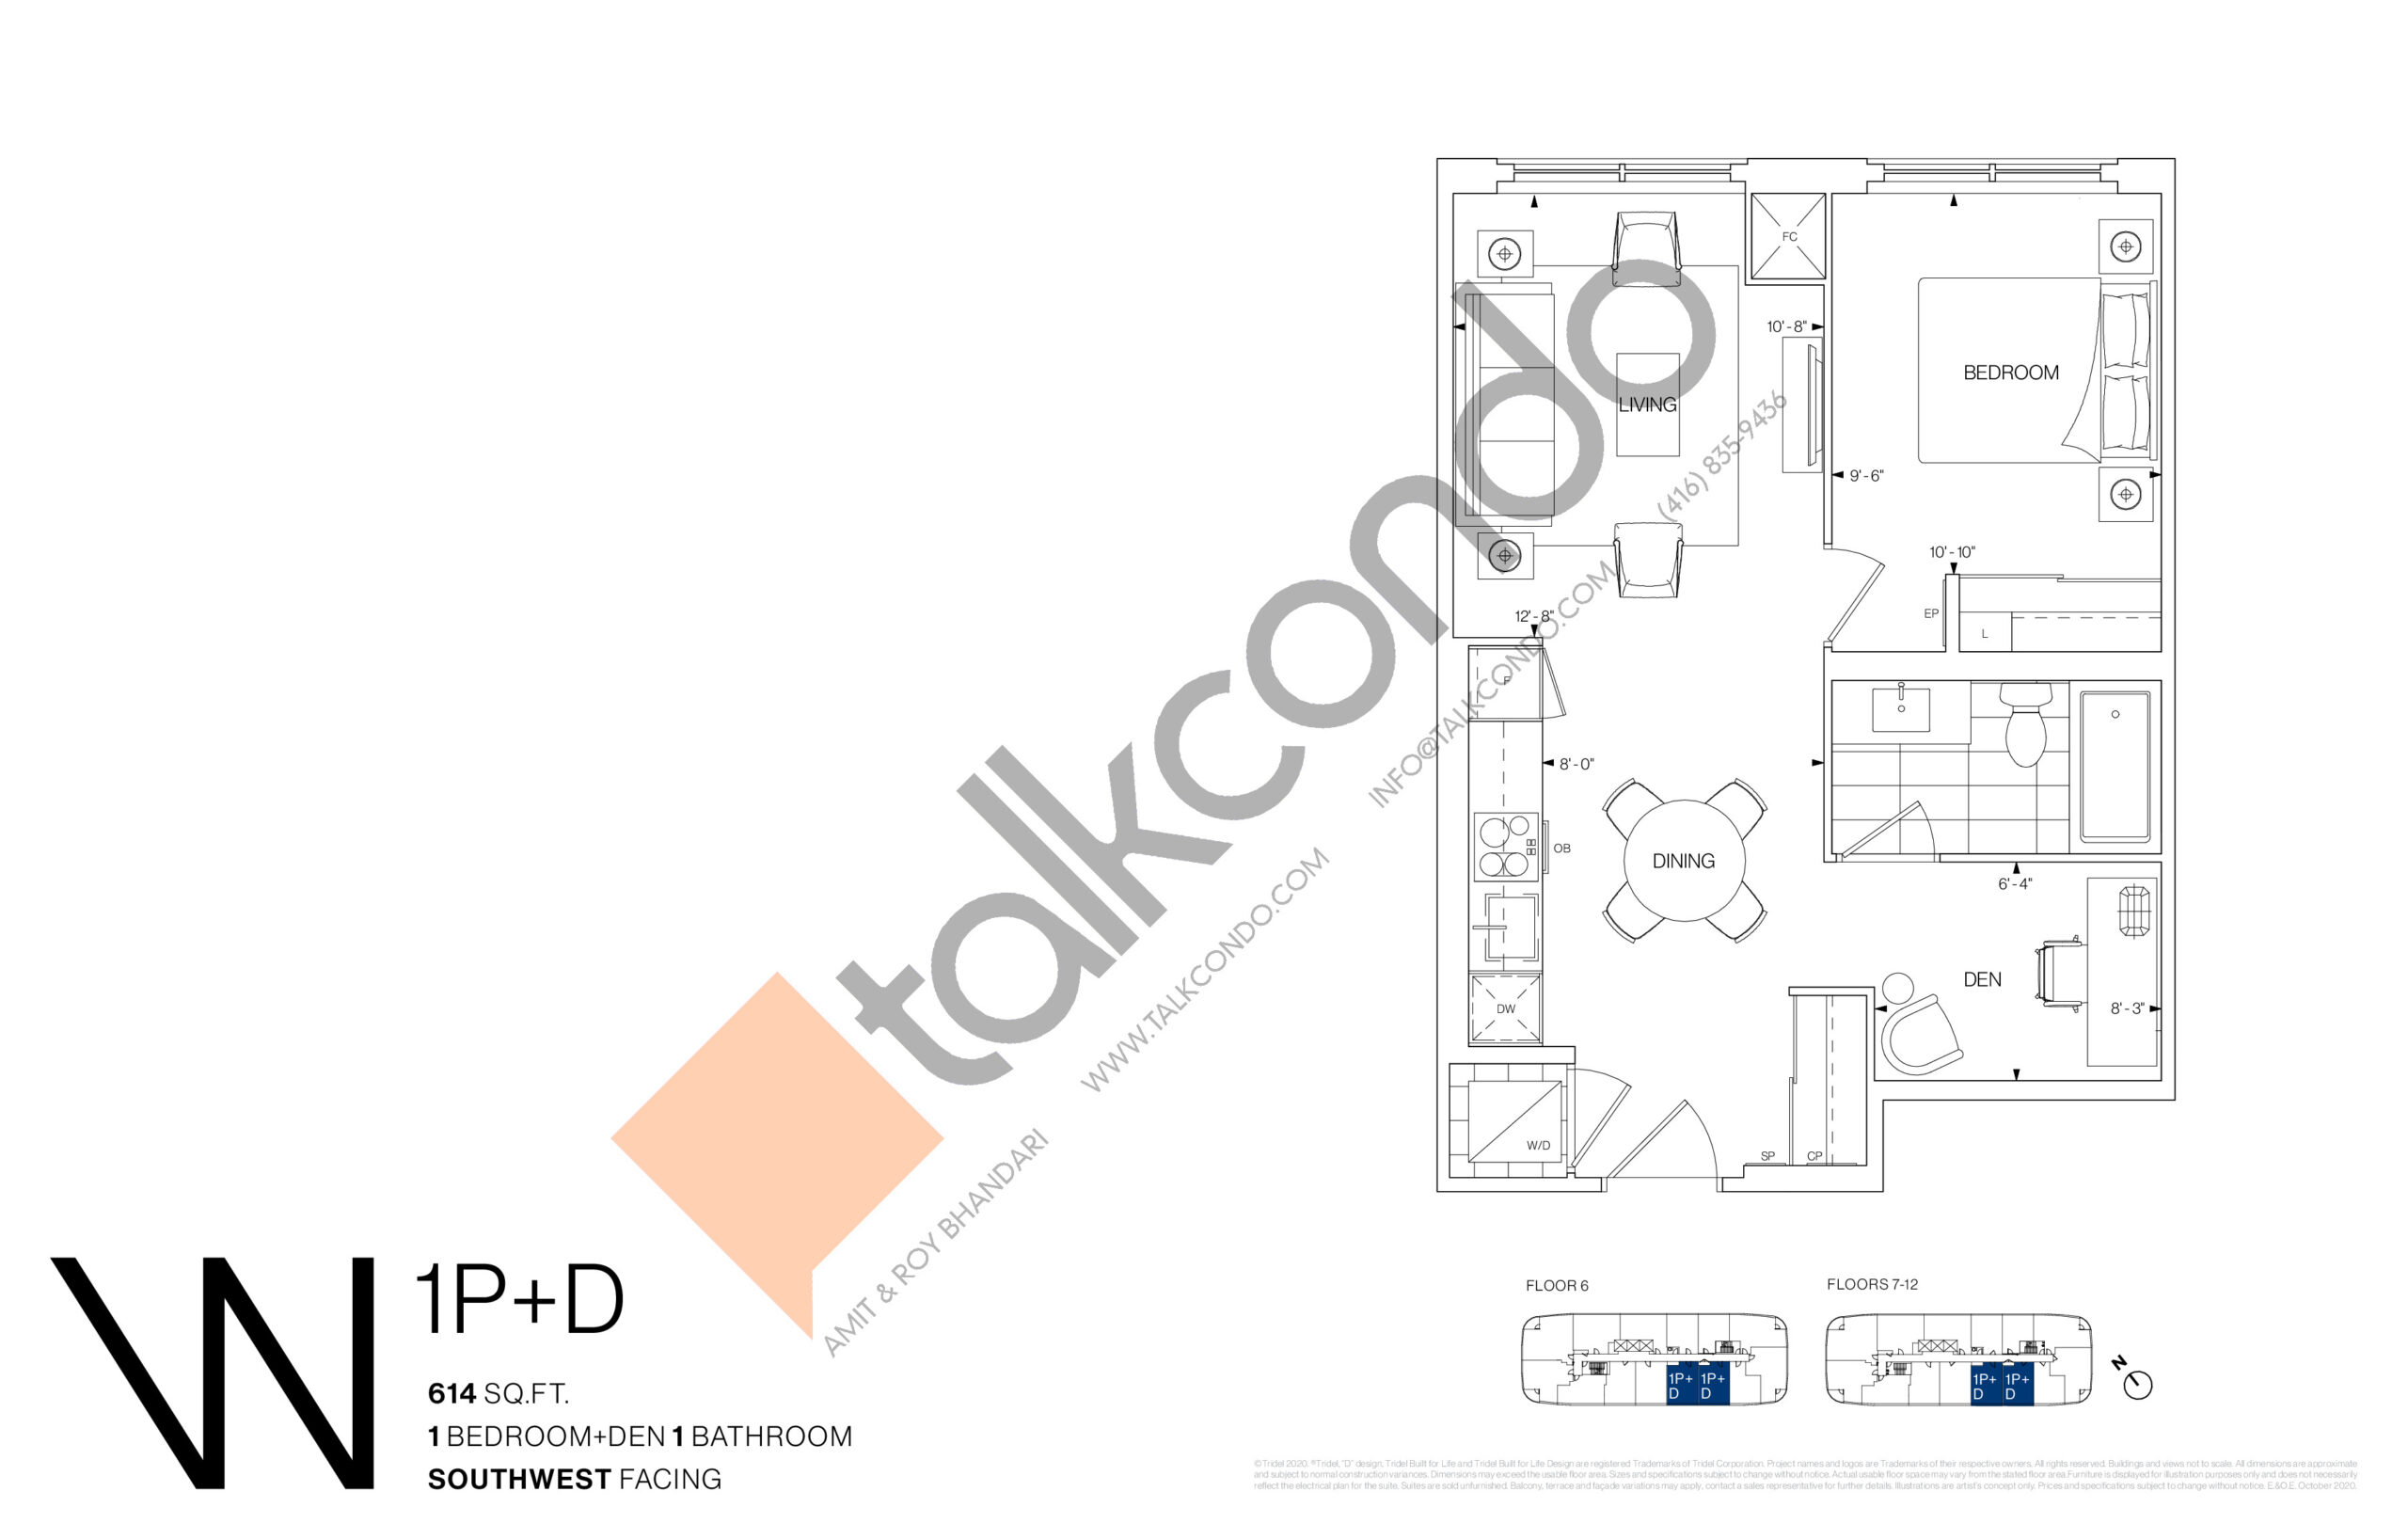 1P+D Floor Plan at Westerly Condos - 614 sq.ft